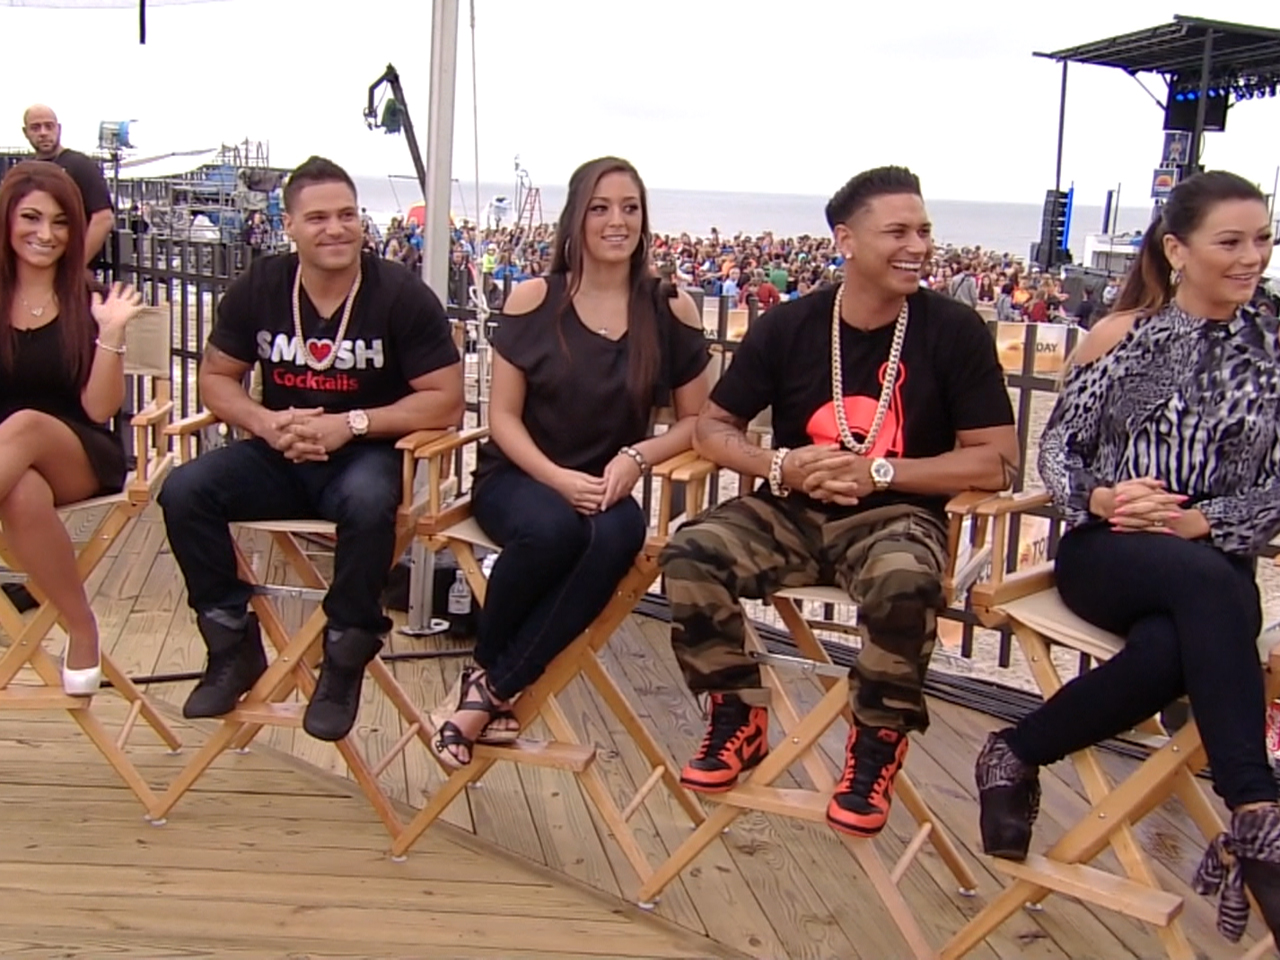 Pauly d i can t believe shore recovery progress today com